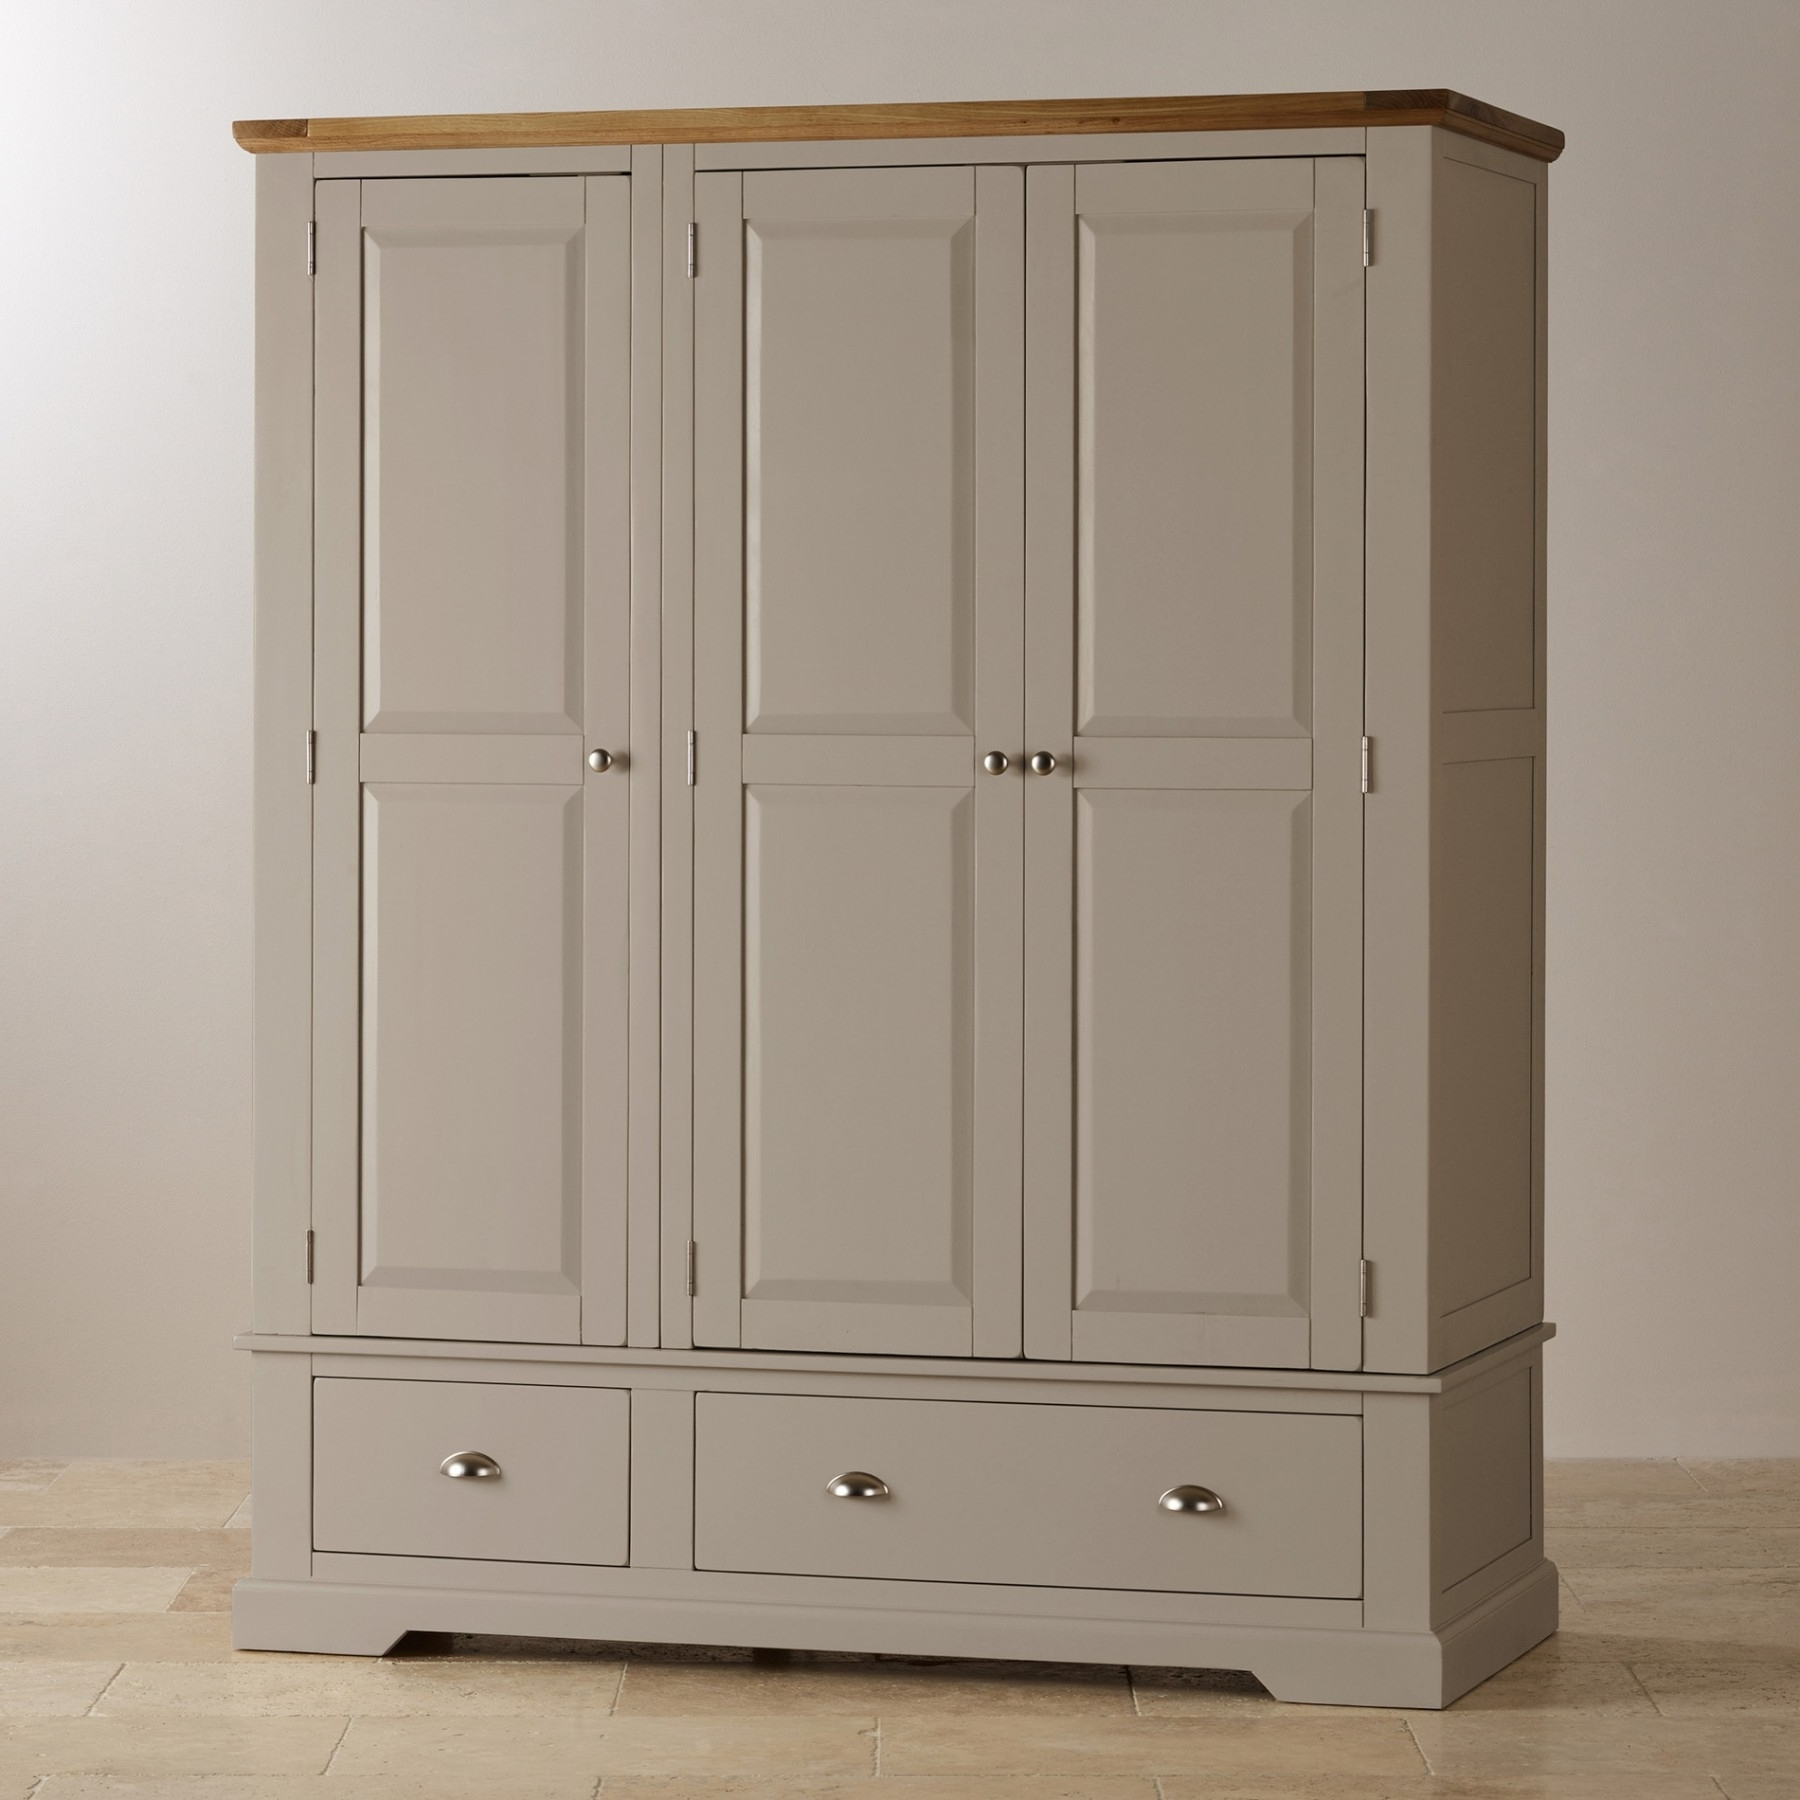 Large Oak Wardrobes Regarding Fashionable St Ives Natural Oak And Light Gray Painted Large Armoire Oak (View 8 of 15)